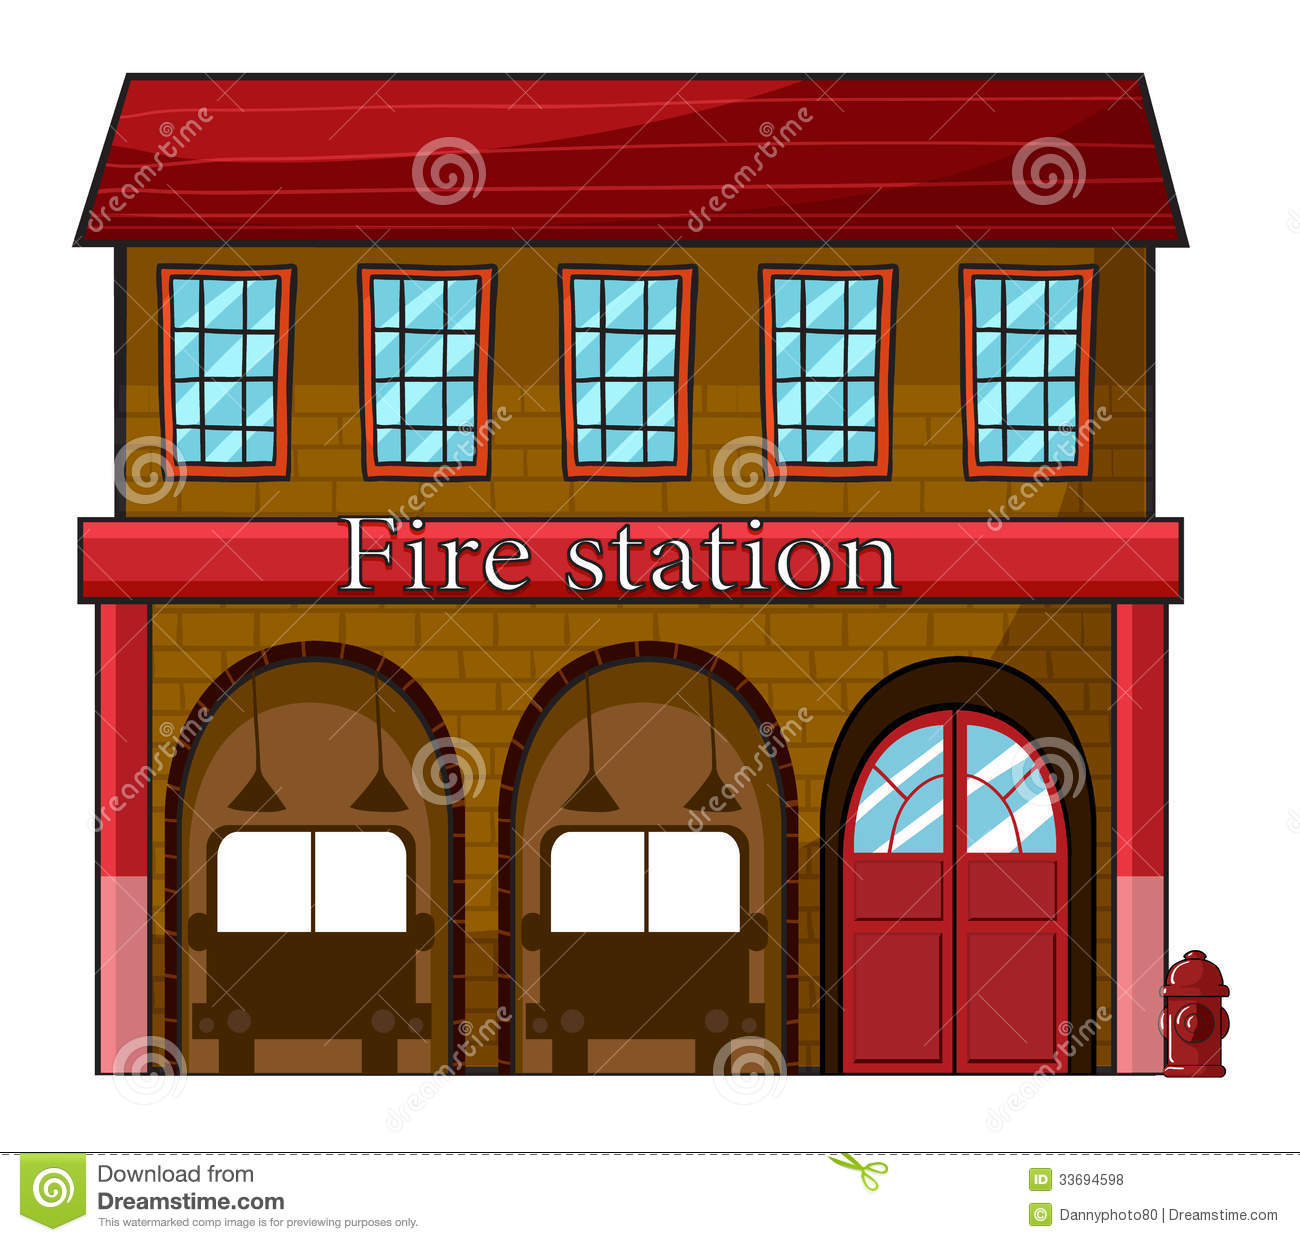 a fire station stock illustration illustration of School Bus Clip Art firehouse clipart black and white